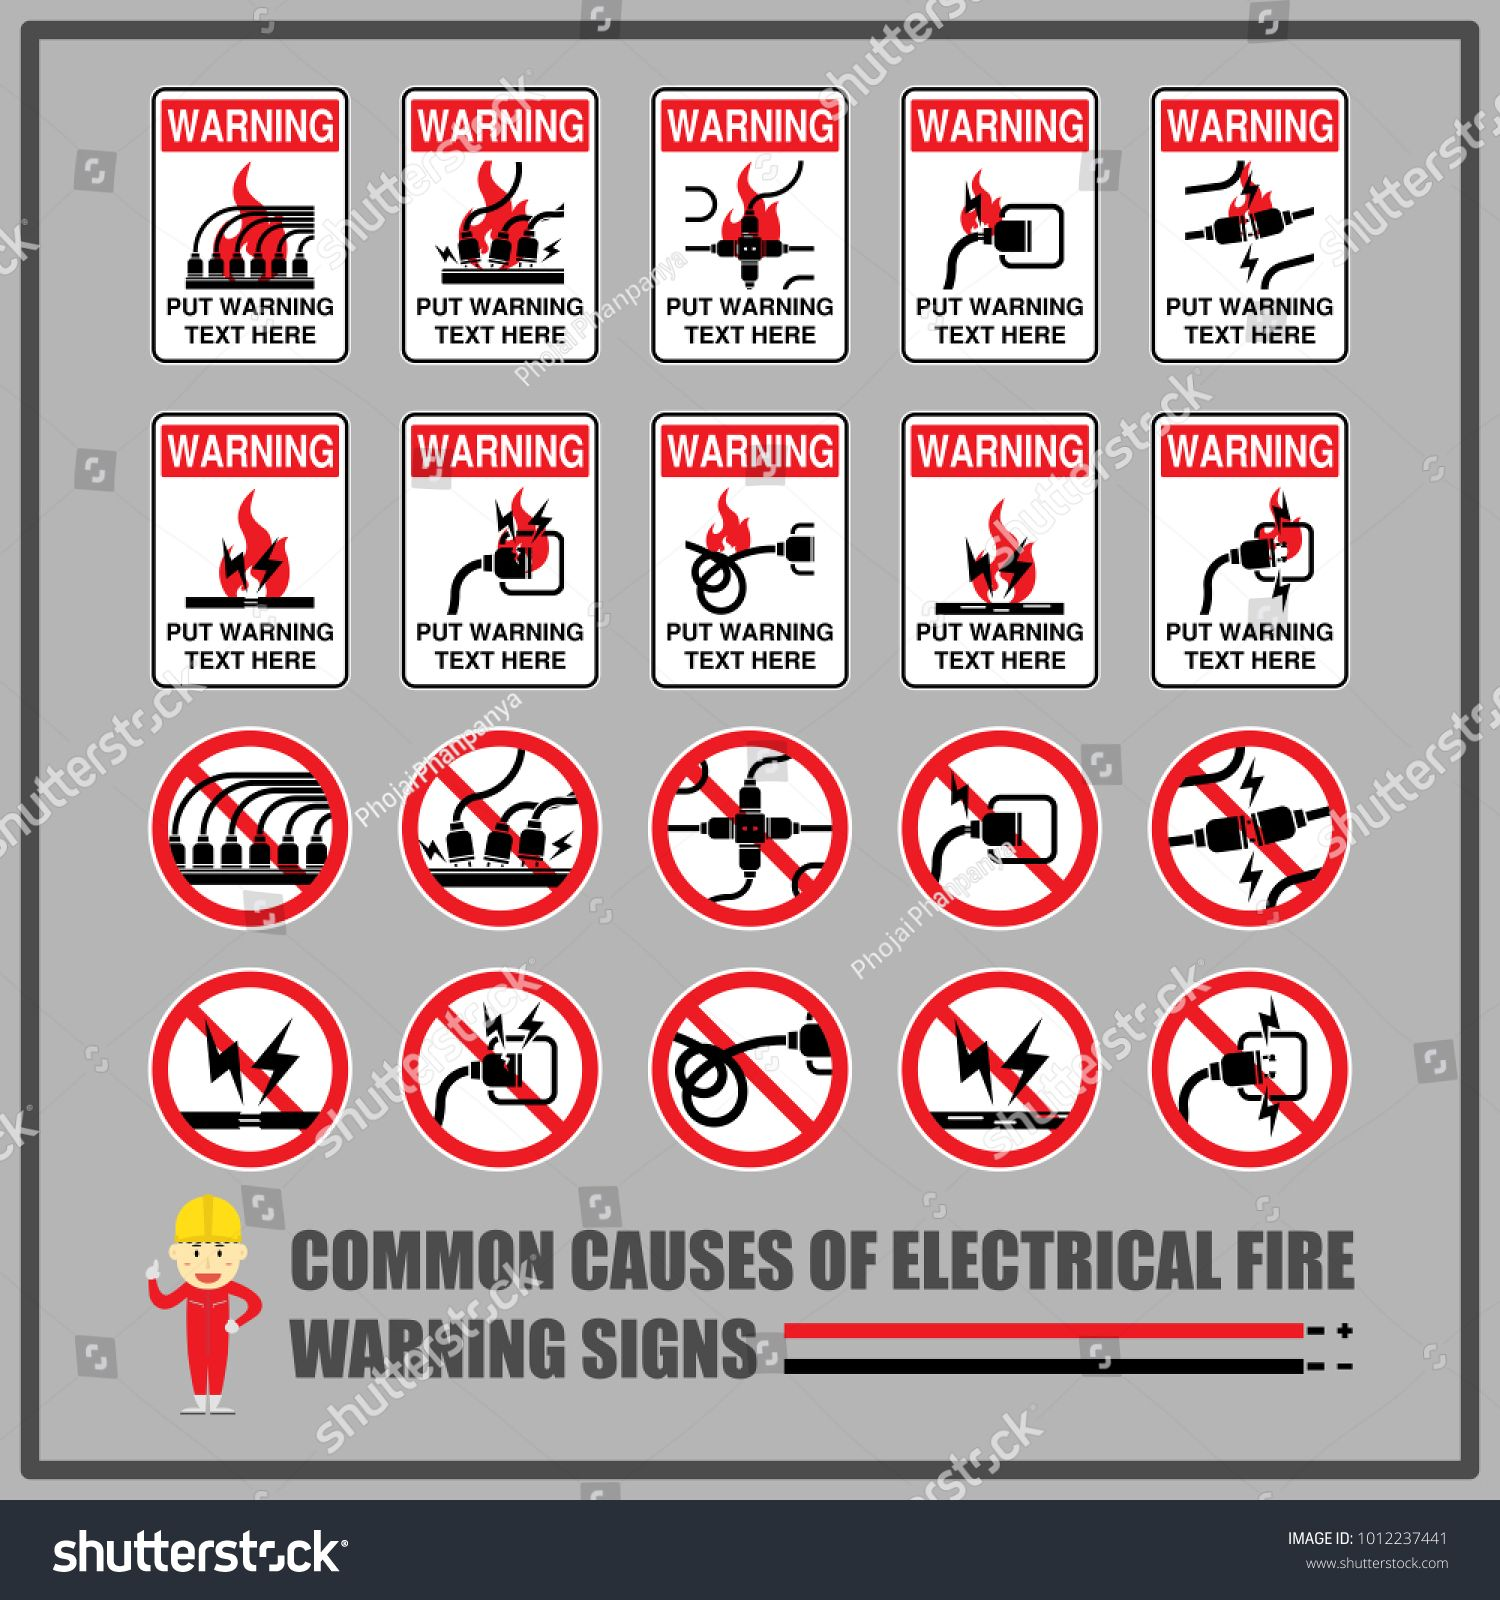 Set Of Safety Warning Signs And Symbols For Causes Of Common Electrical Fires Signs For Warning Messag In 2020 Safety Warning Signs Graphic Design Portfolio Symbols